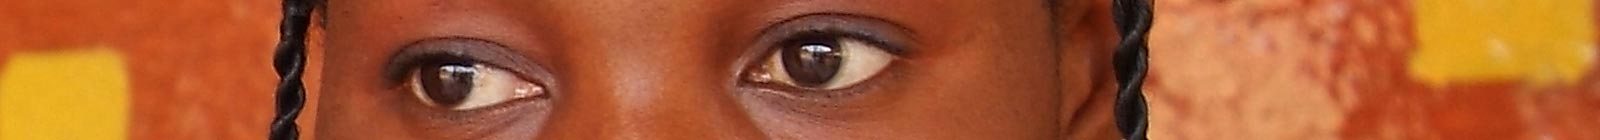 Eyes of Ilira, Conakry, Guinea.